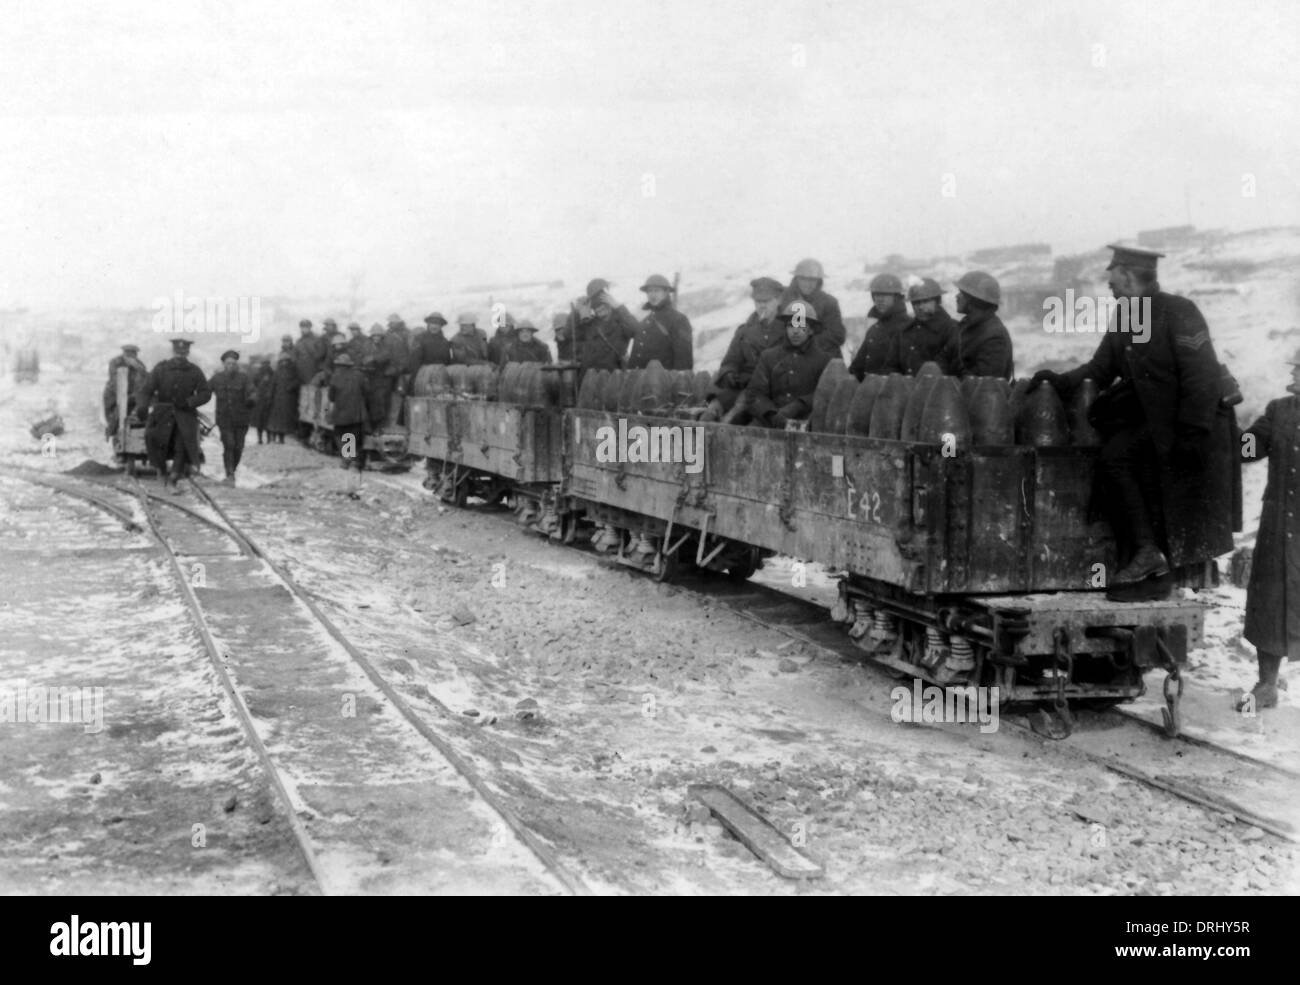 Allied soldiers on small ammunition train, WW1 - Stock Image